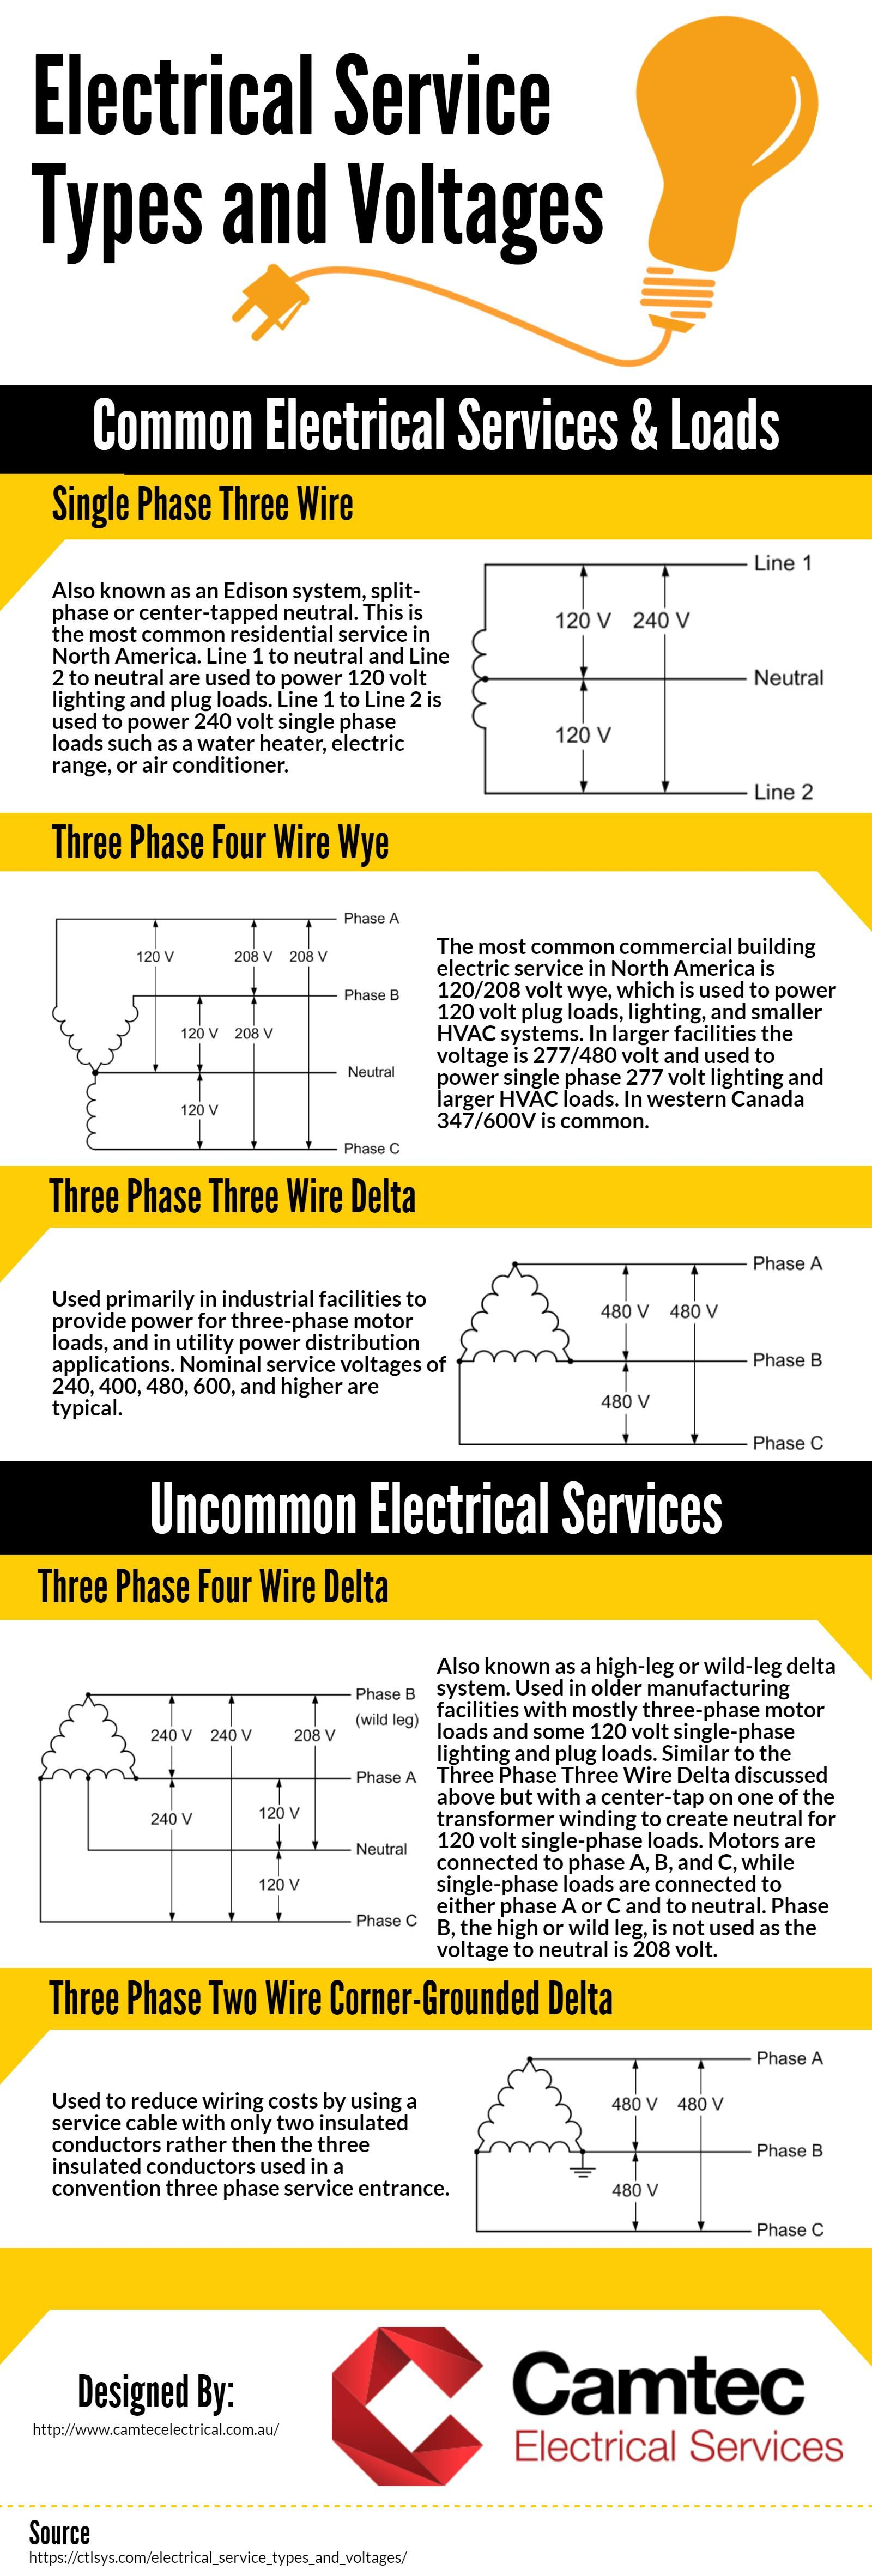 The following infographic is provided by Camtec Electrical